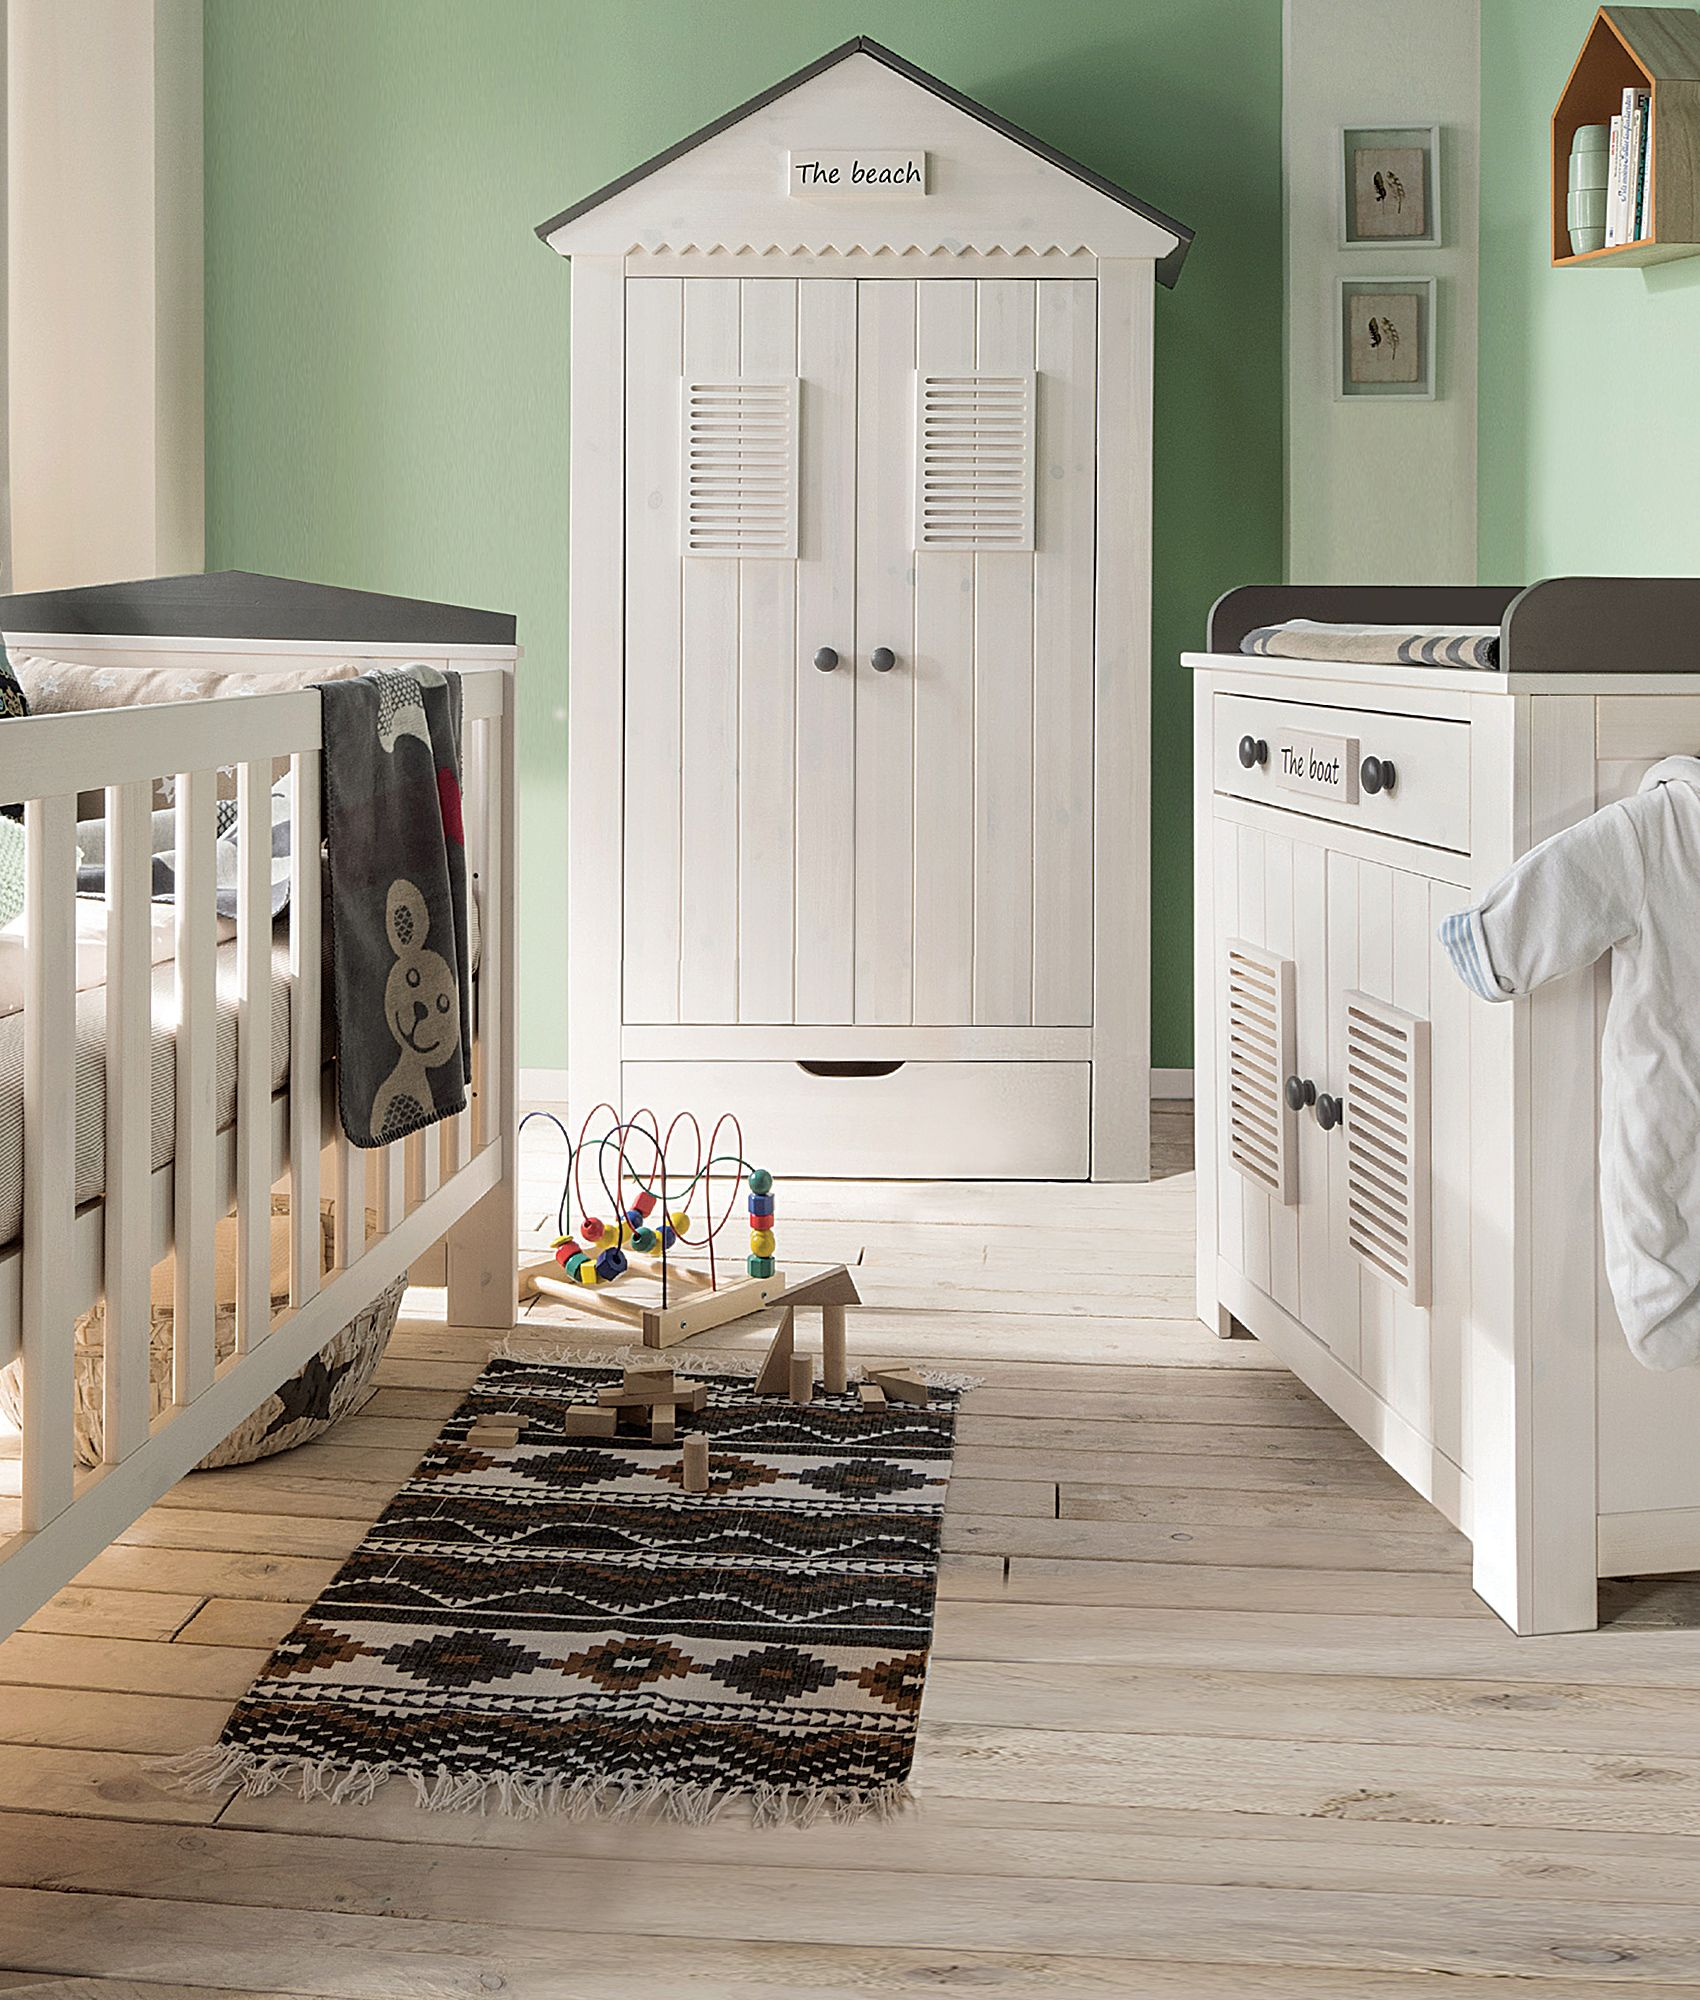 kleiderschrank sunny in strandh tten optik bringt maritimes flair ins babyzimmer aus massivem. Black Bedroom Furniture Sets. Home Design Ideas